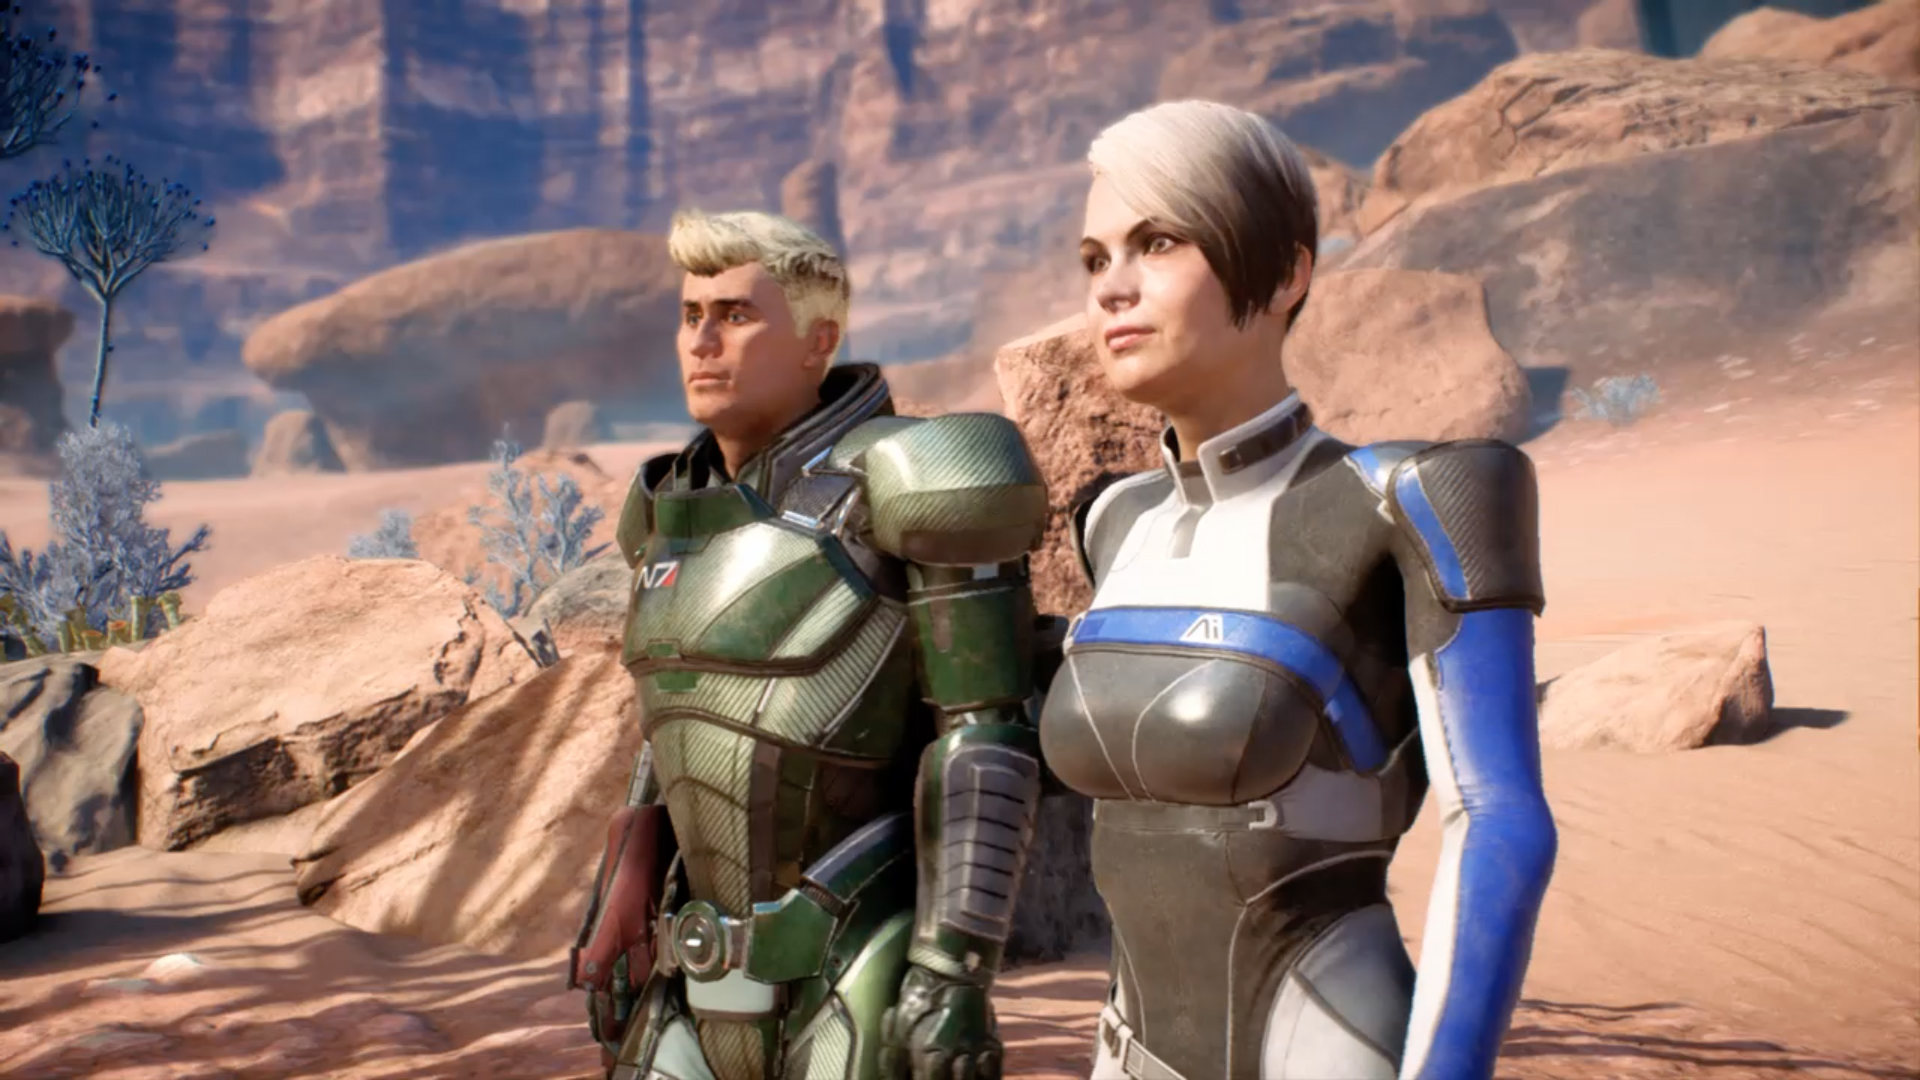 Mass Effectandromeda 14 Things I Wish I Knew Before Starting Mass Effect Andromeda